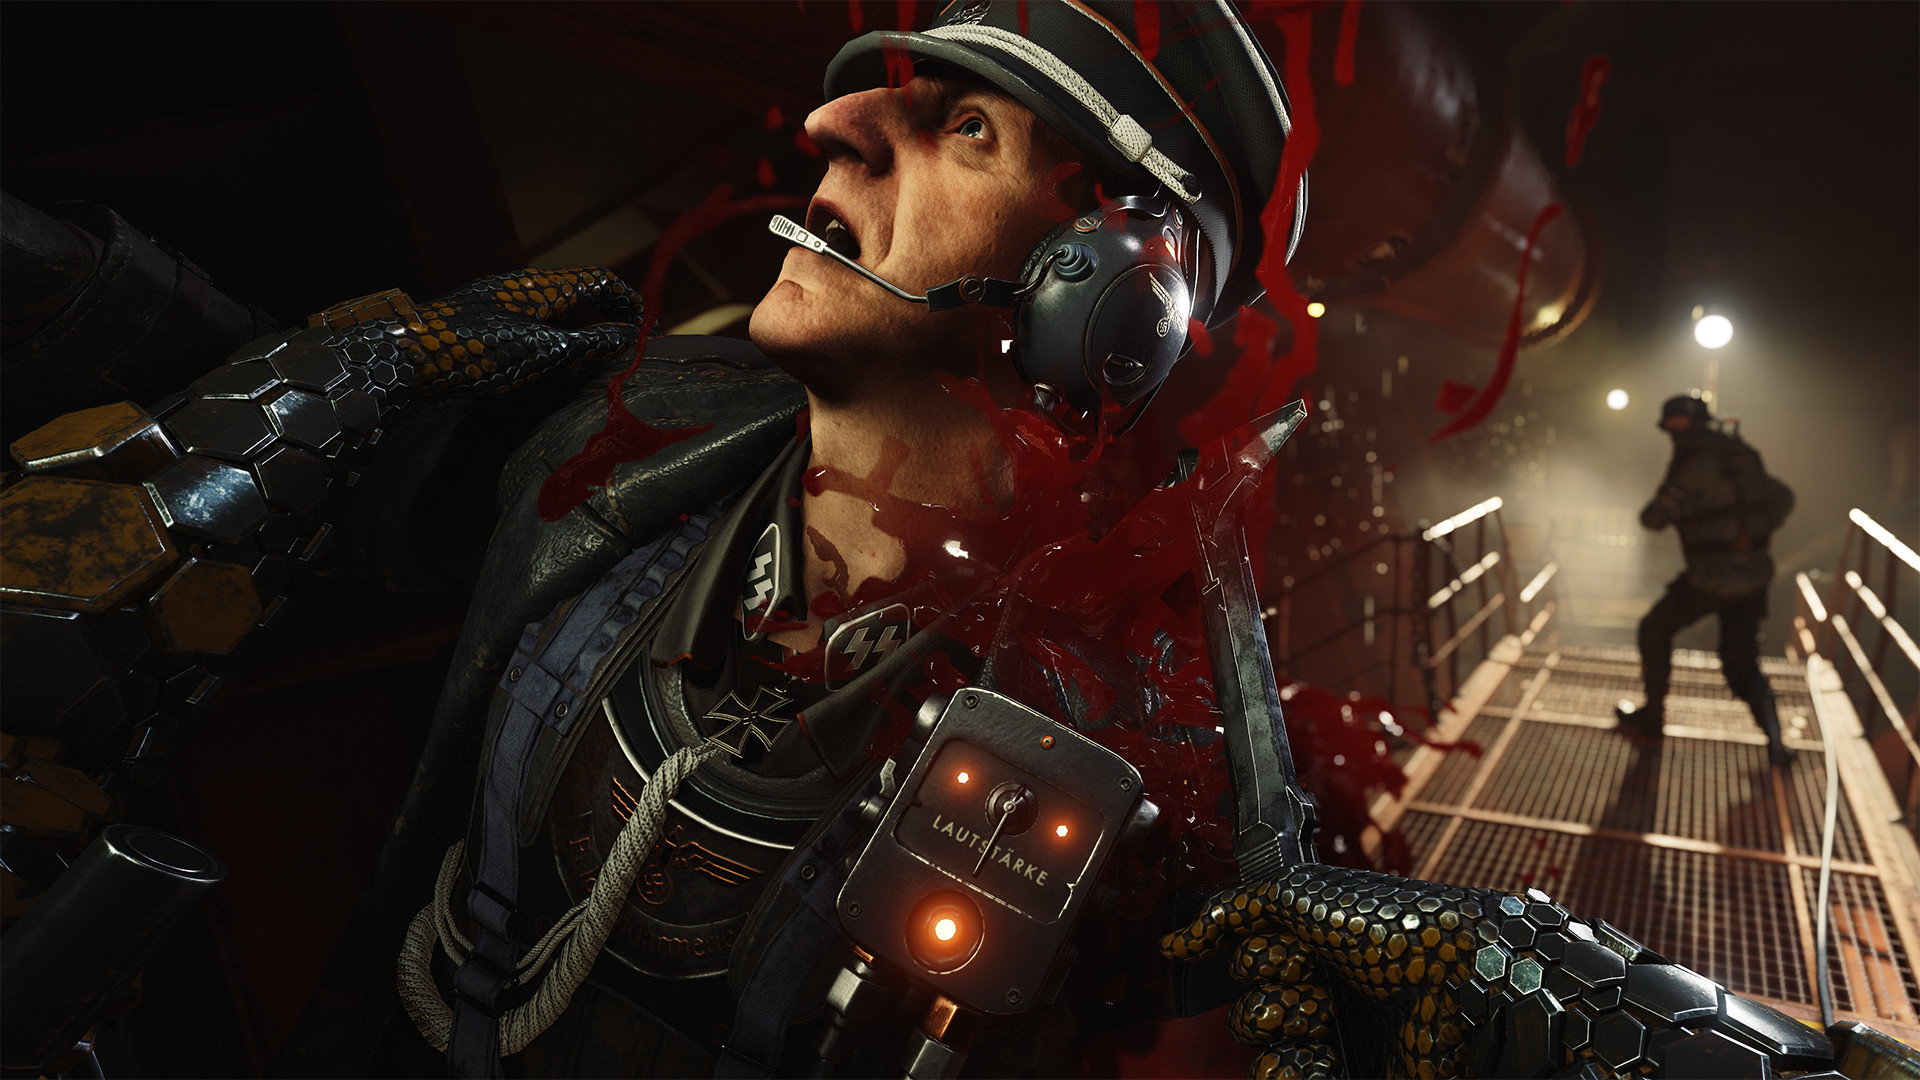 download wolfenstein 2 the new colossus cracked by codex include all dlc and latest update 1 mirrorace multiup